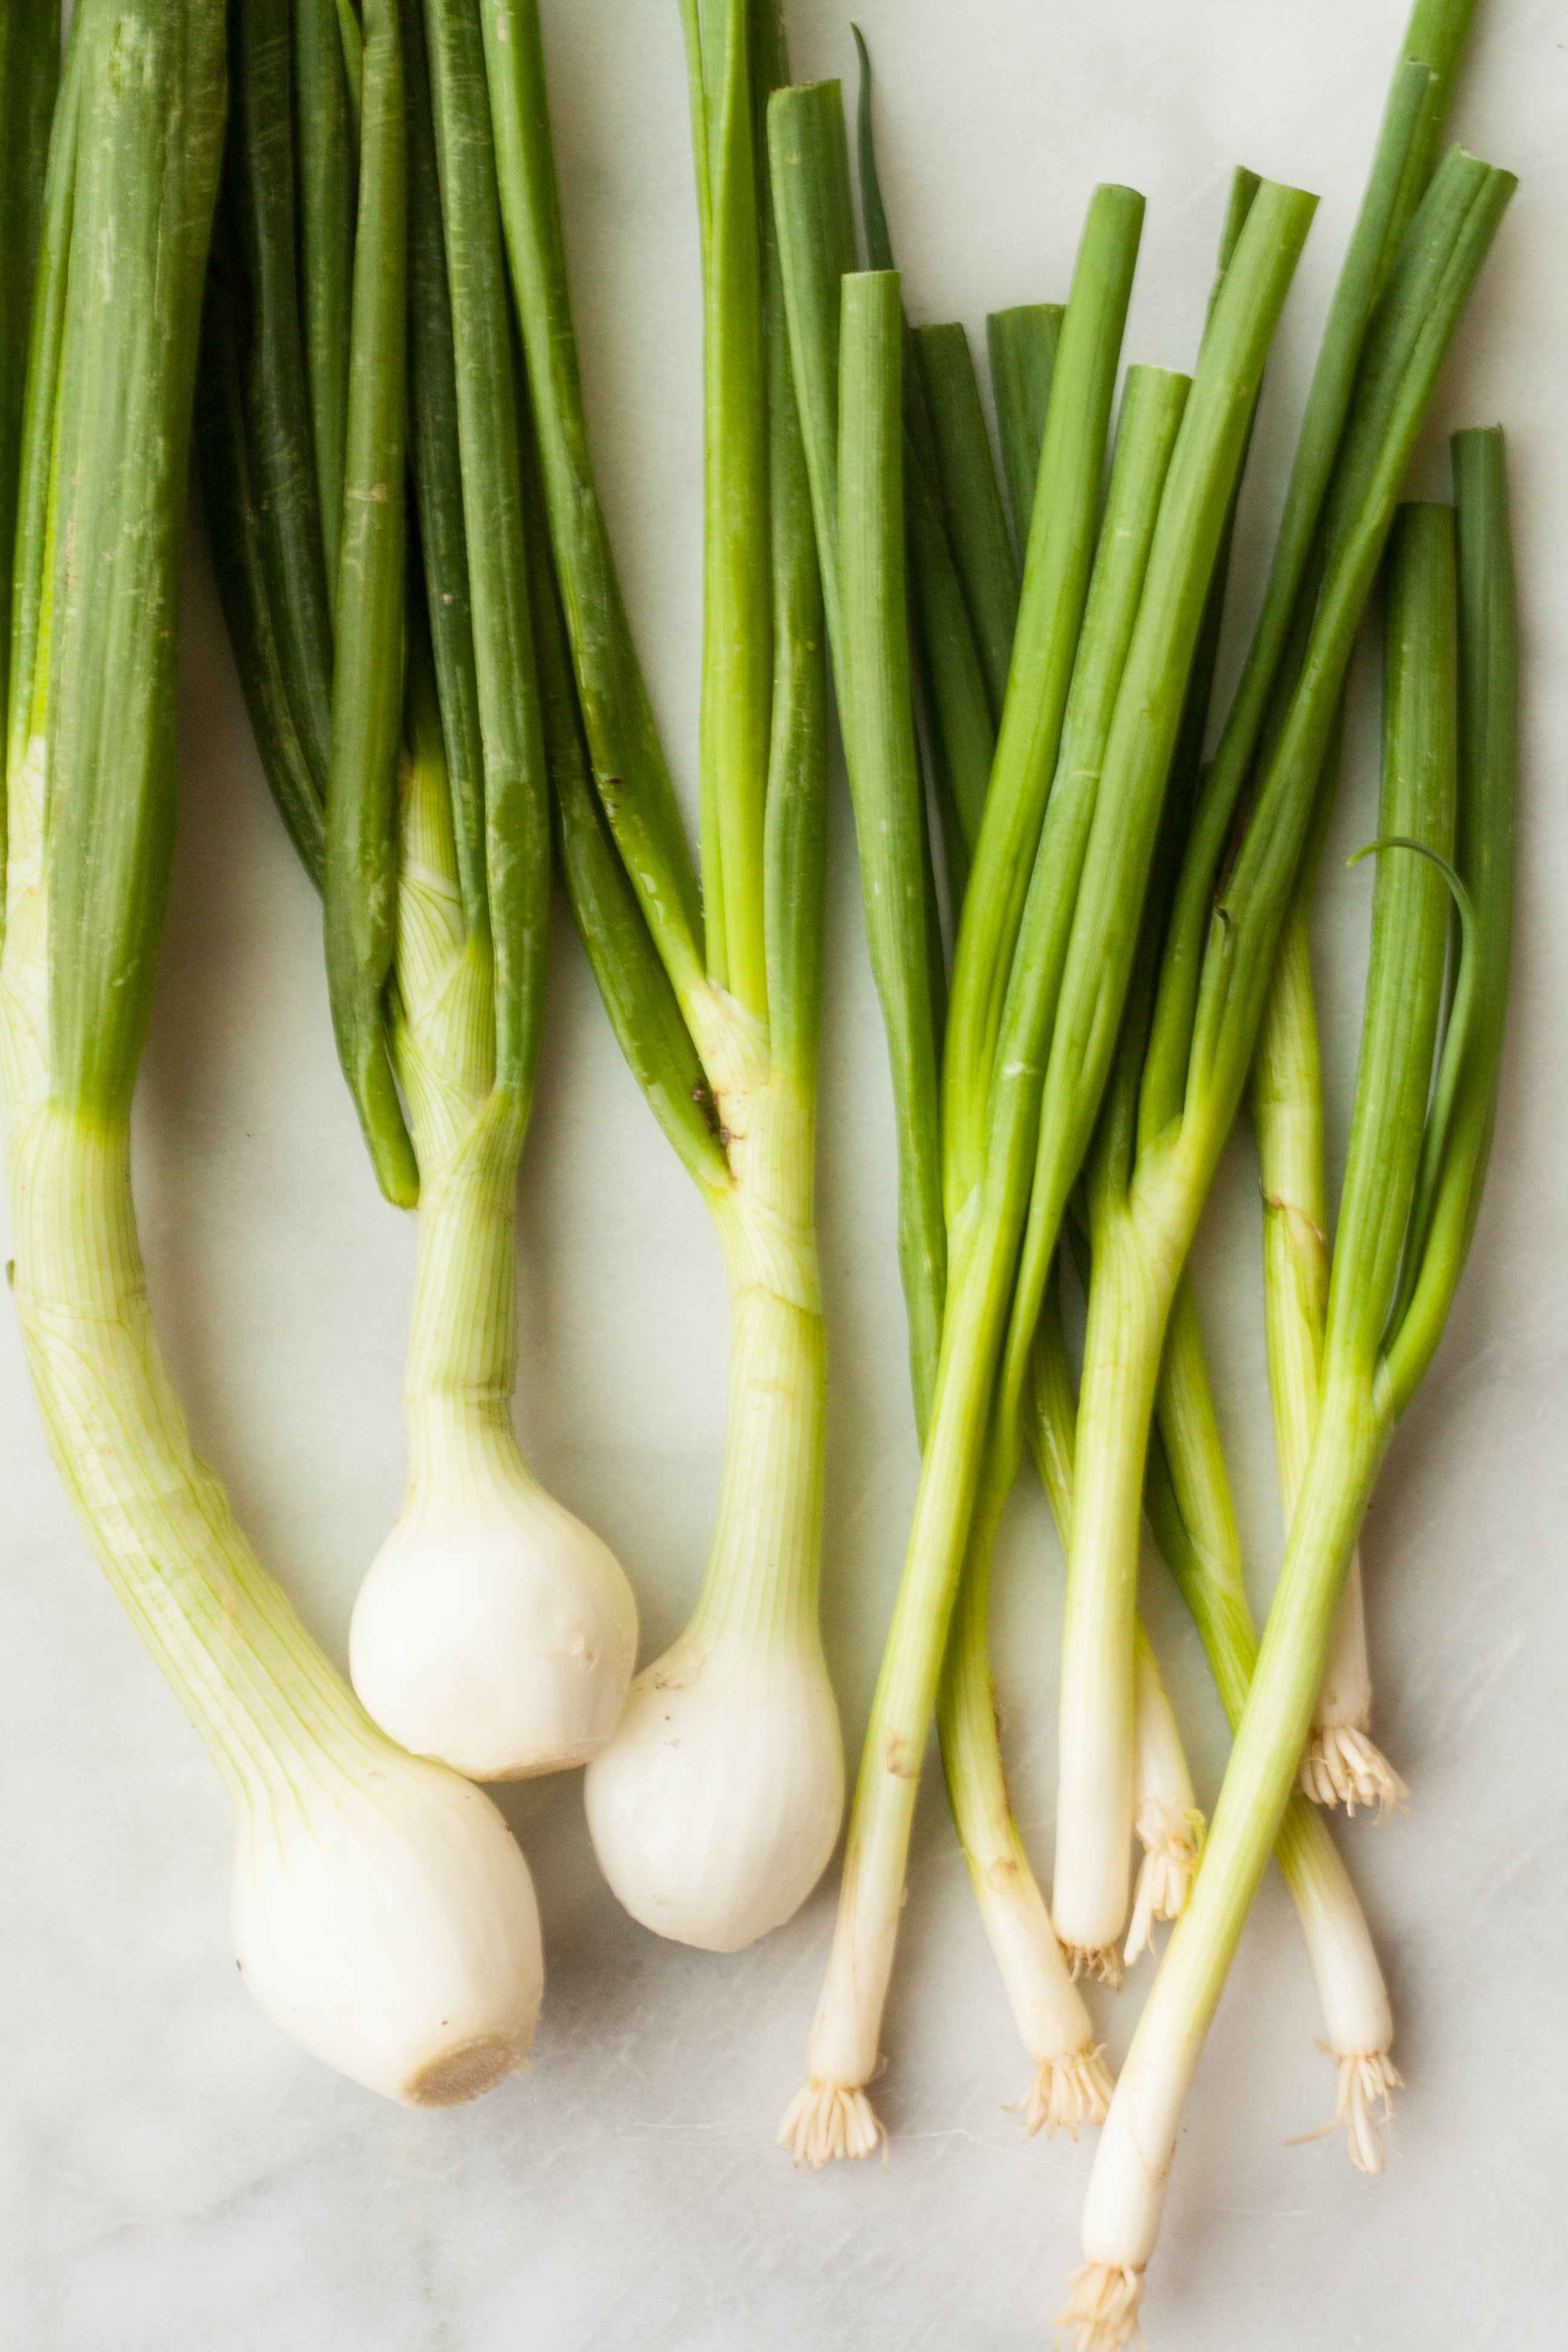 Difference Between Scallions and Green & Spring Onions   Kitchn